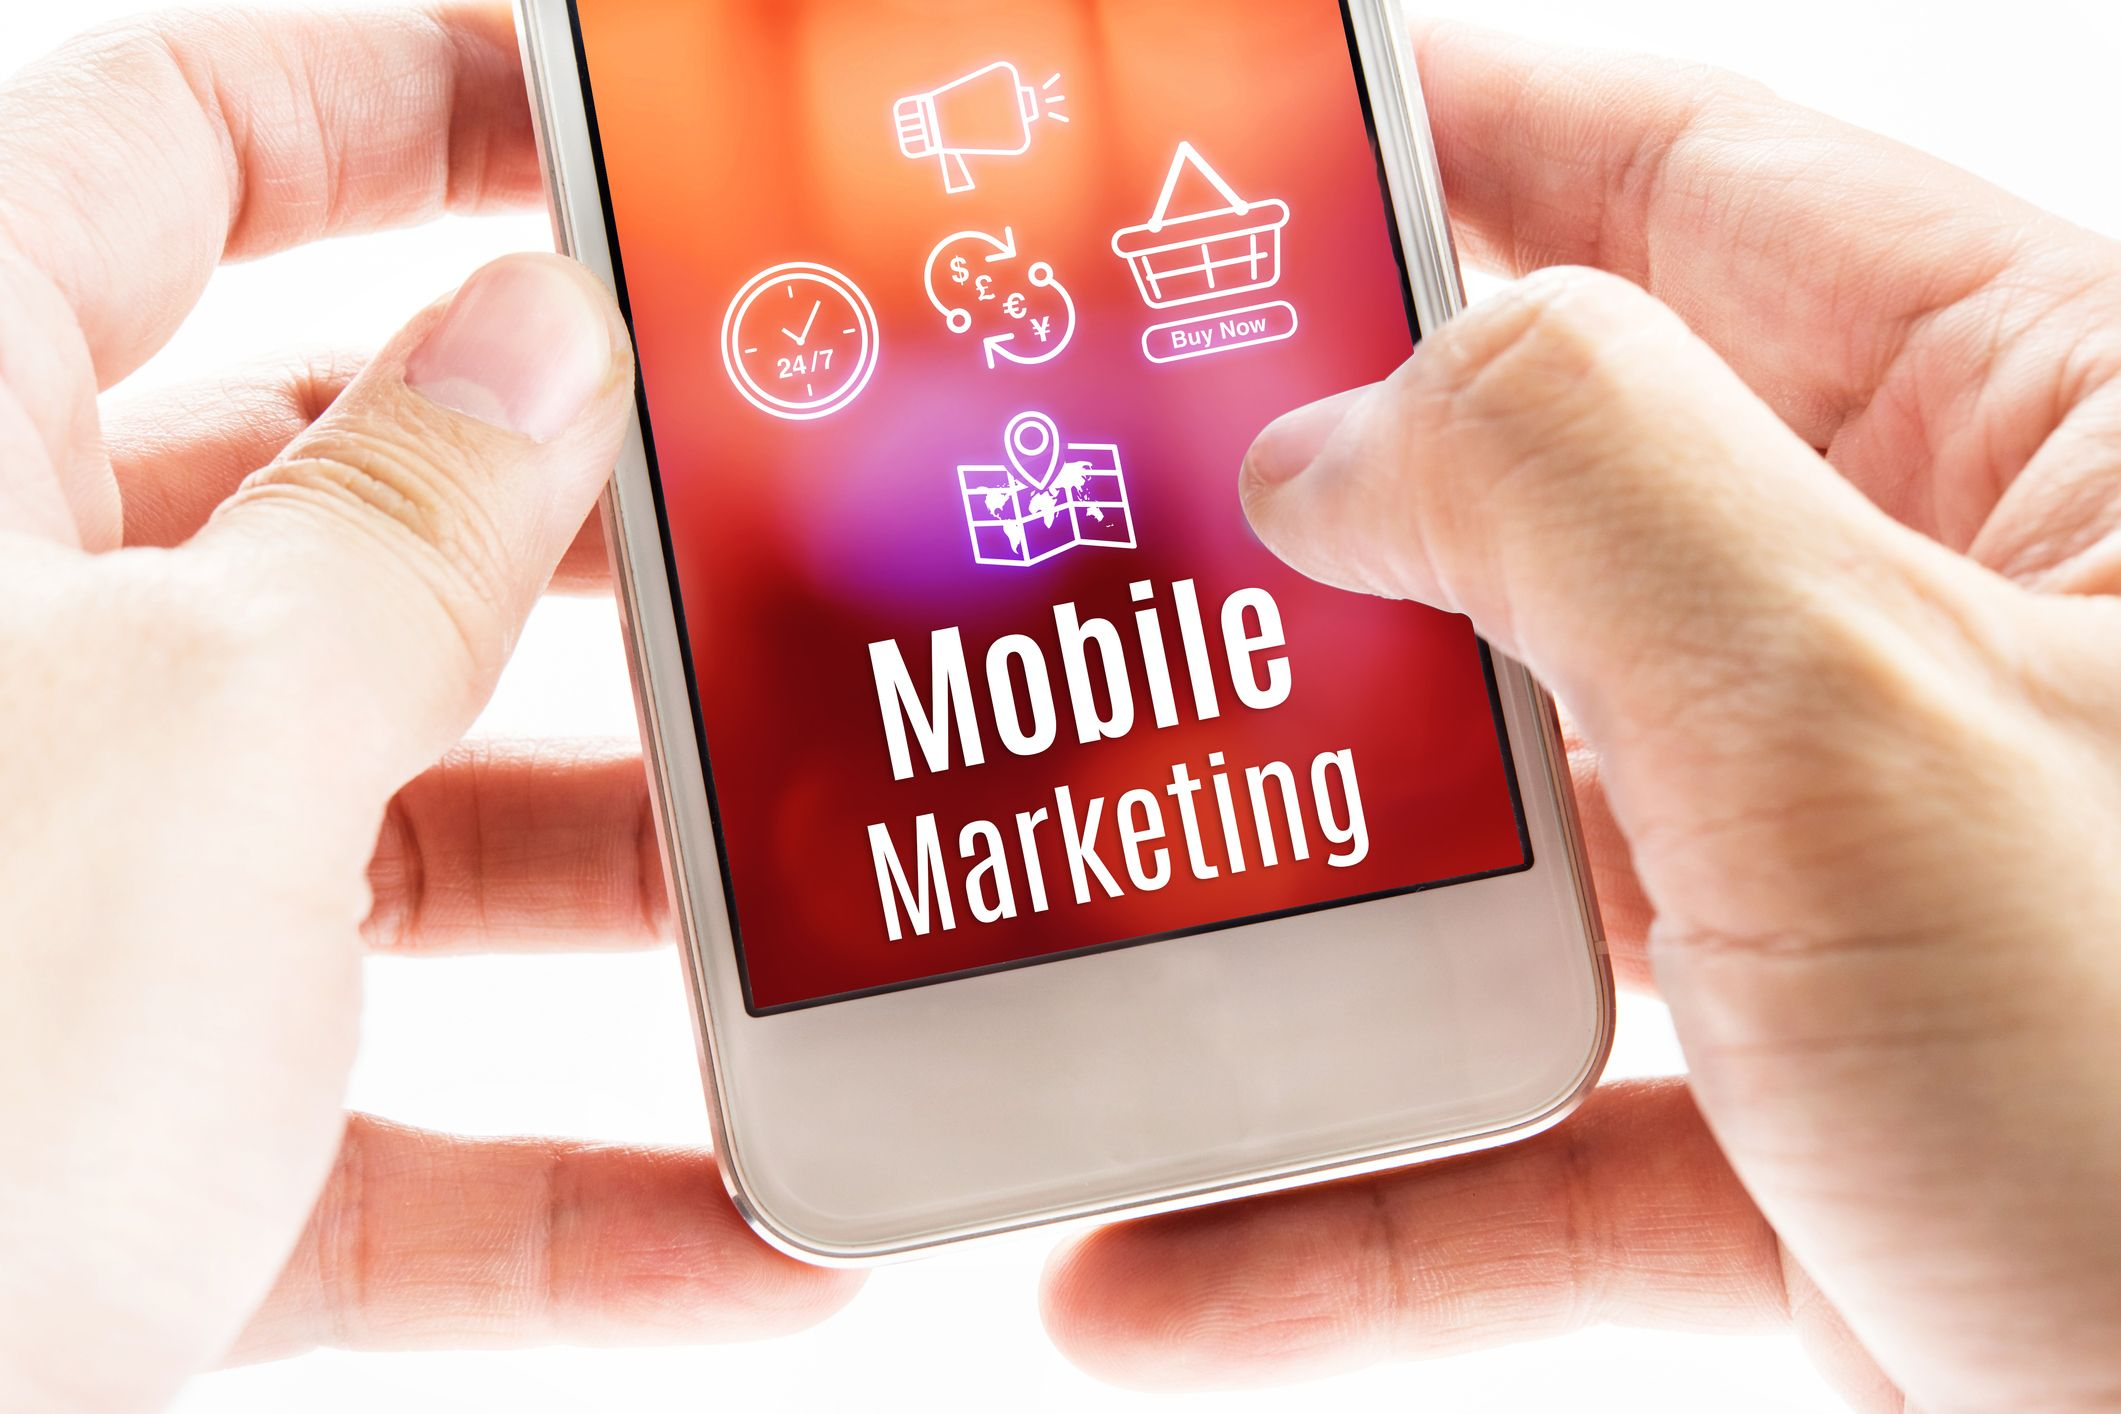 Mobile Marketing: 2017 Business Trends